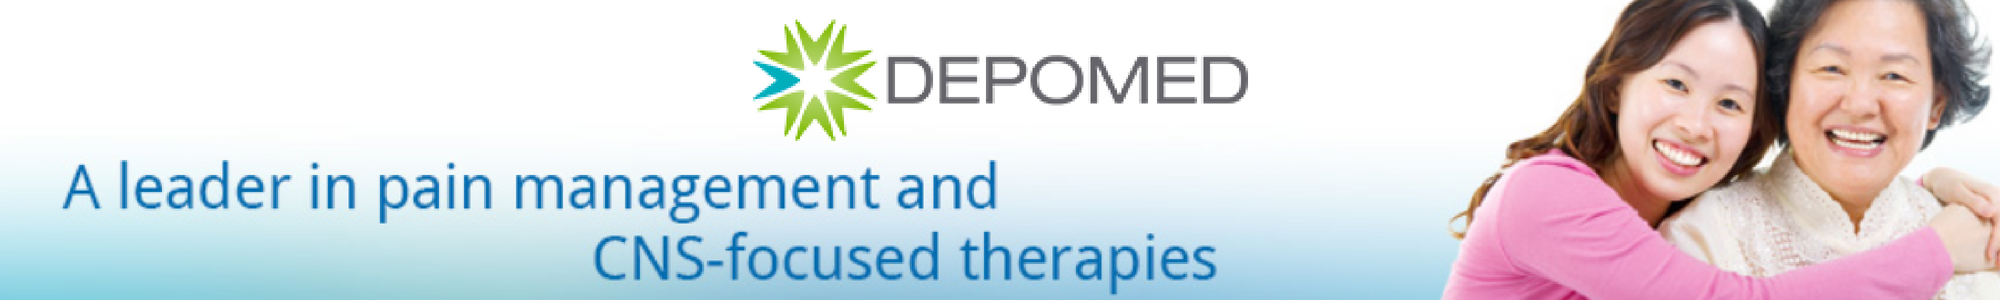 Depomed, Inc.